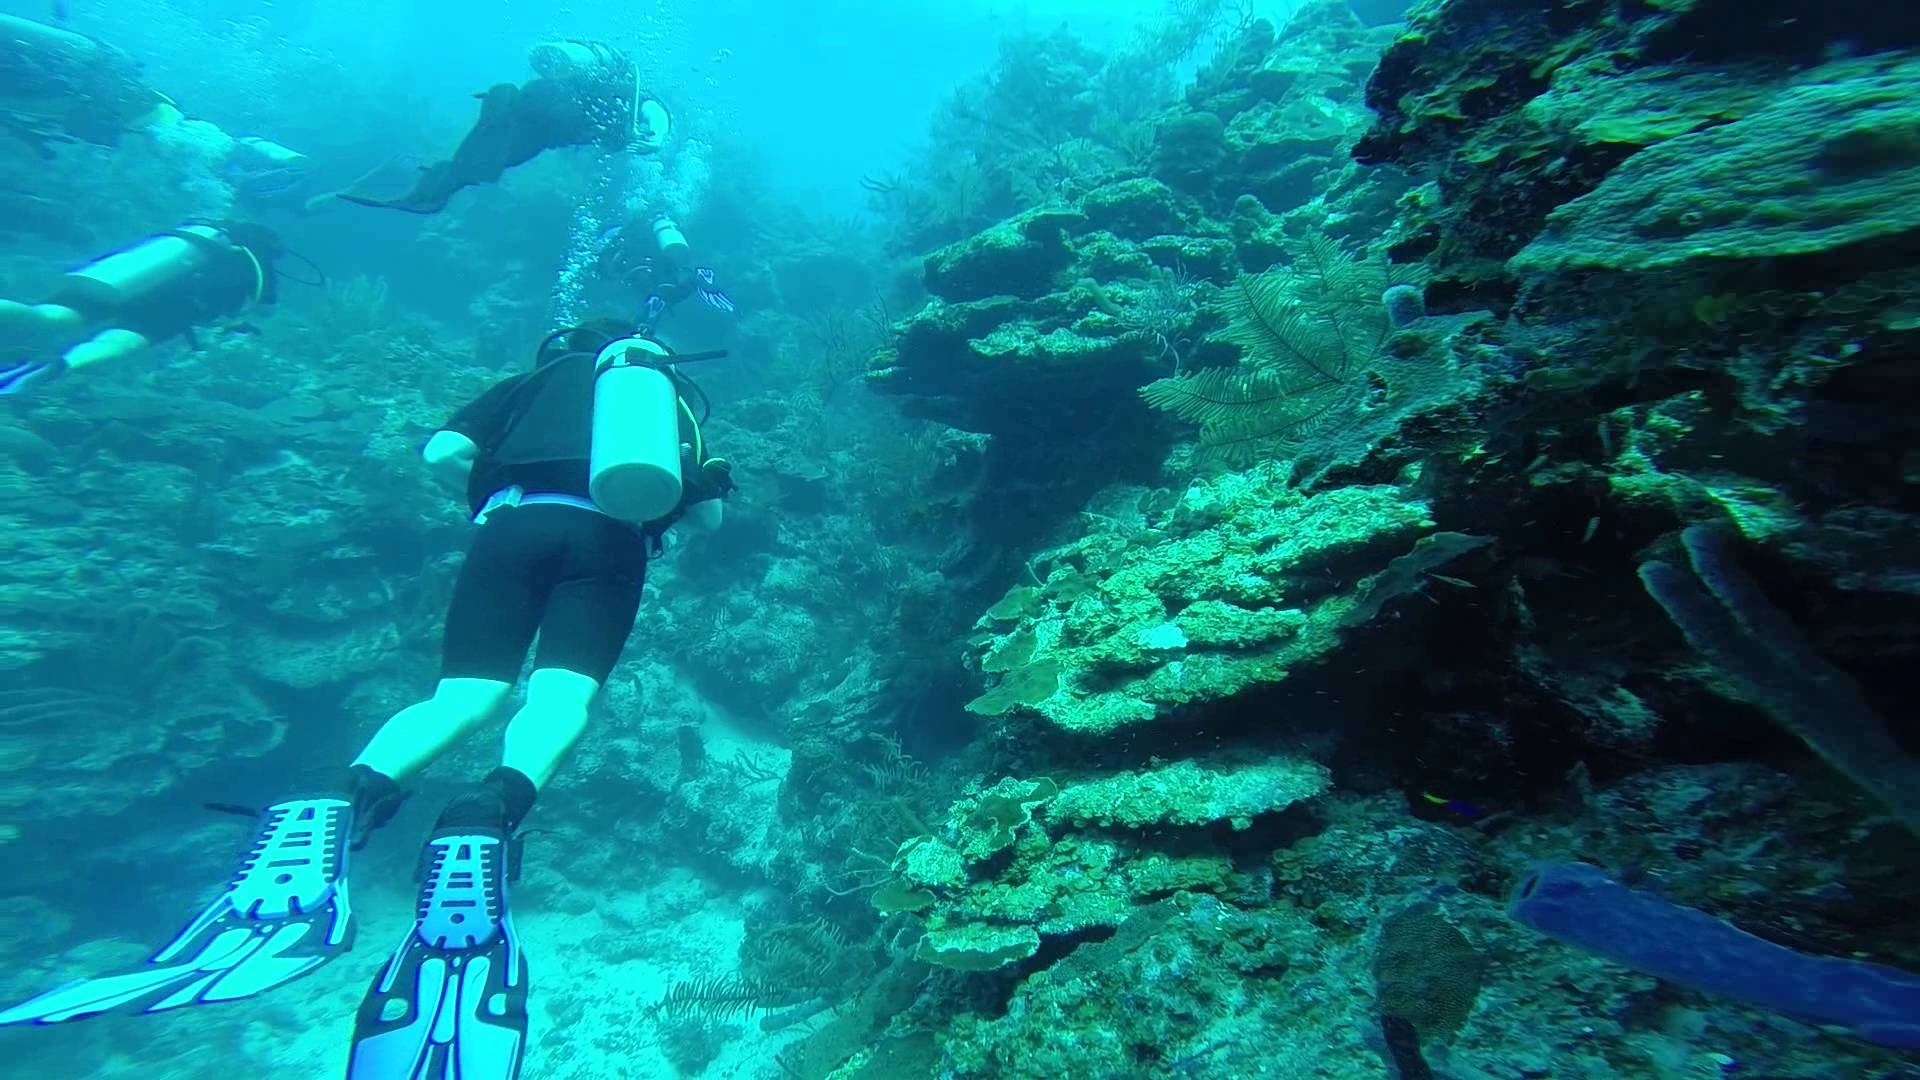 Half Moon Caye Wall The Cayes and Atolls, ITBEBOB. Blue Hole, Belize, Dive 2 Half Moon Caye Wall 1 GOPR0489 ...